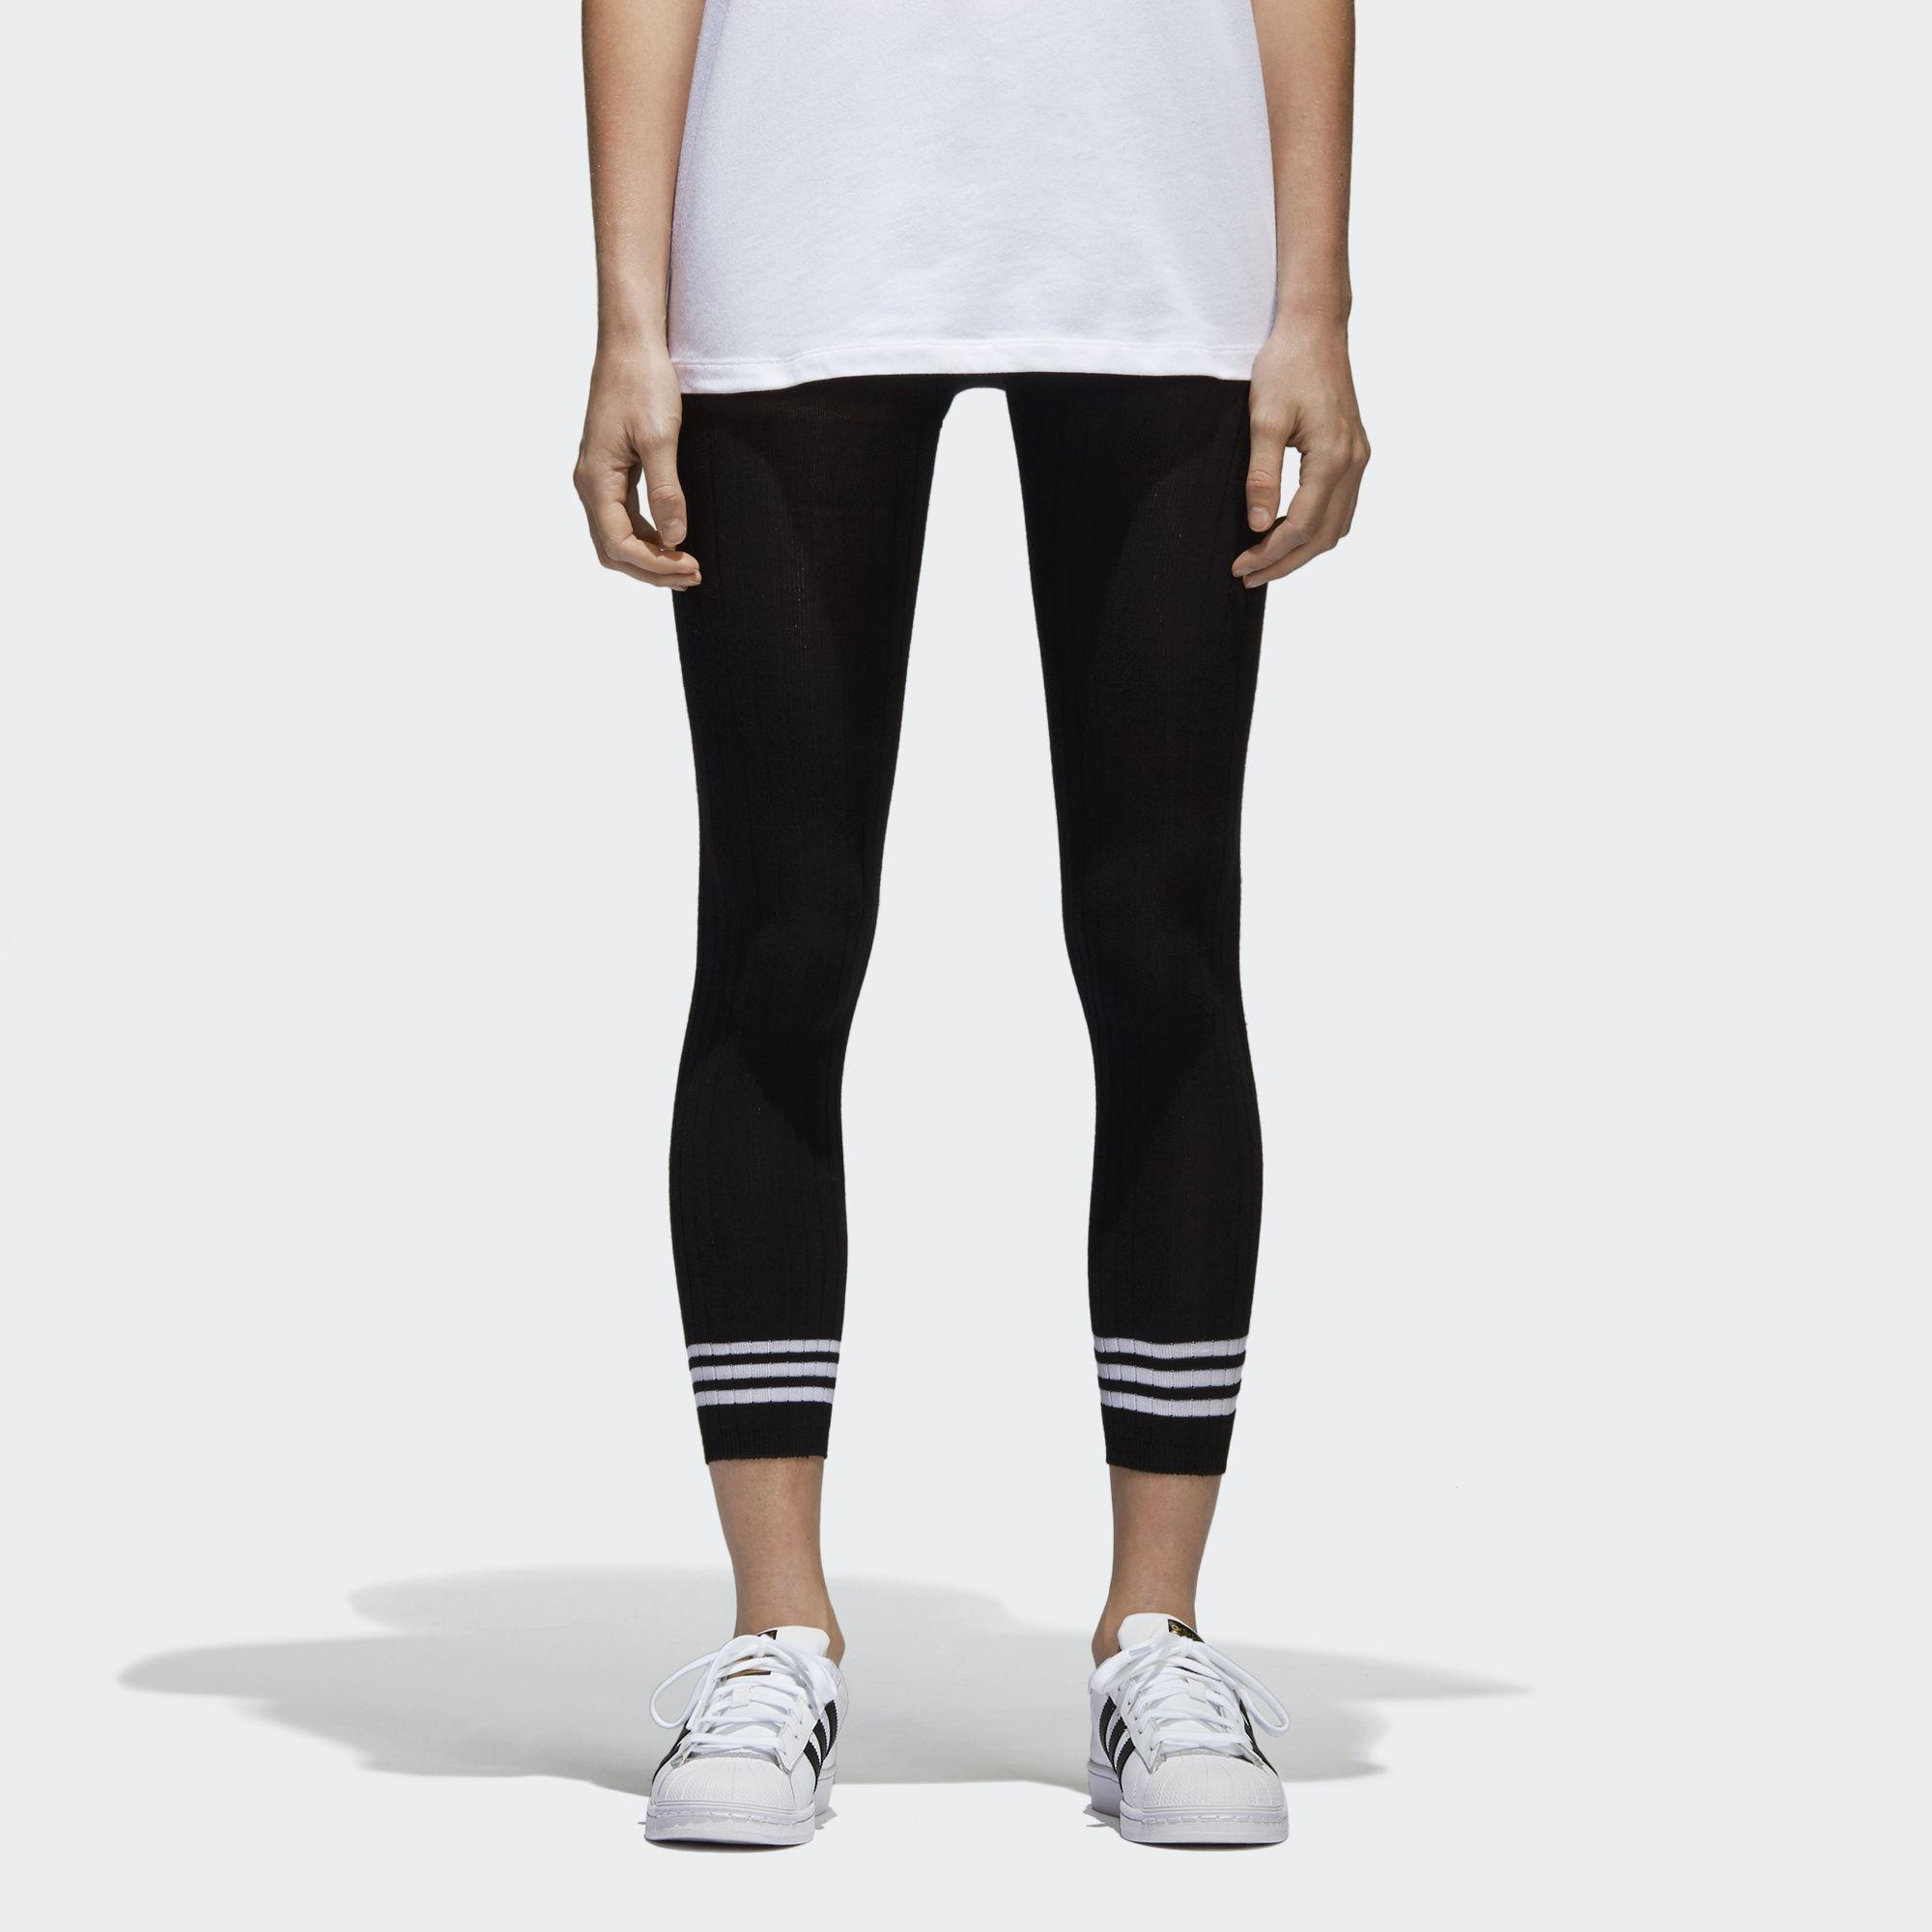 2cbdc103757 Lyst - Adidas Originals Womens 3-stripes Tights in Black - Save 11%